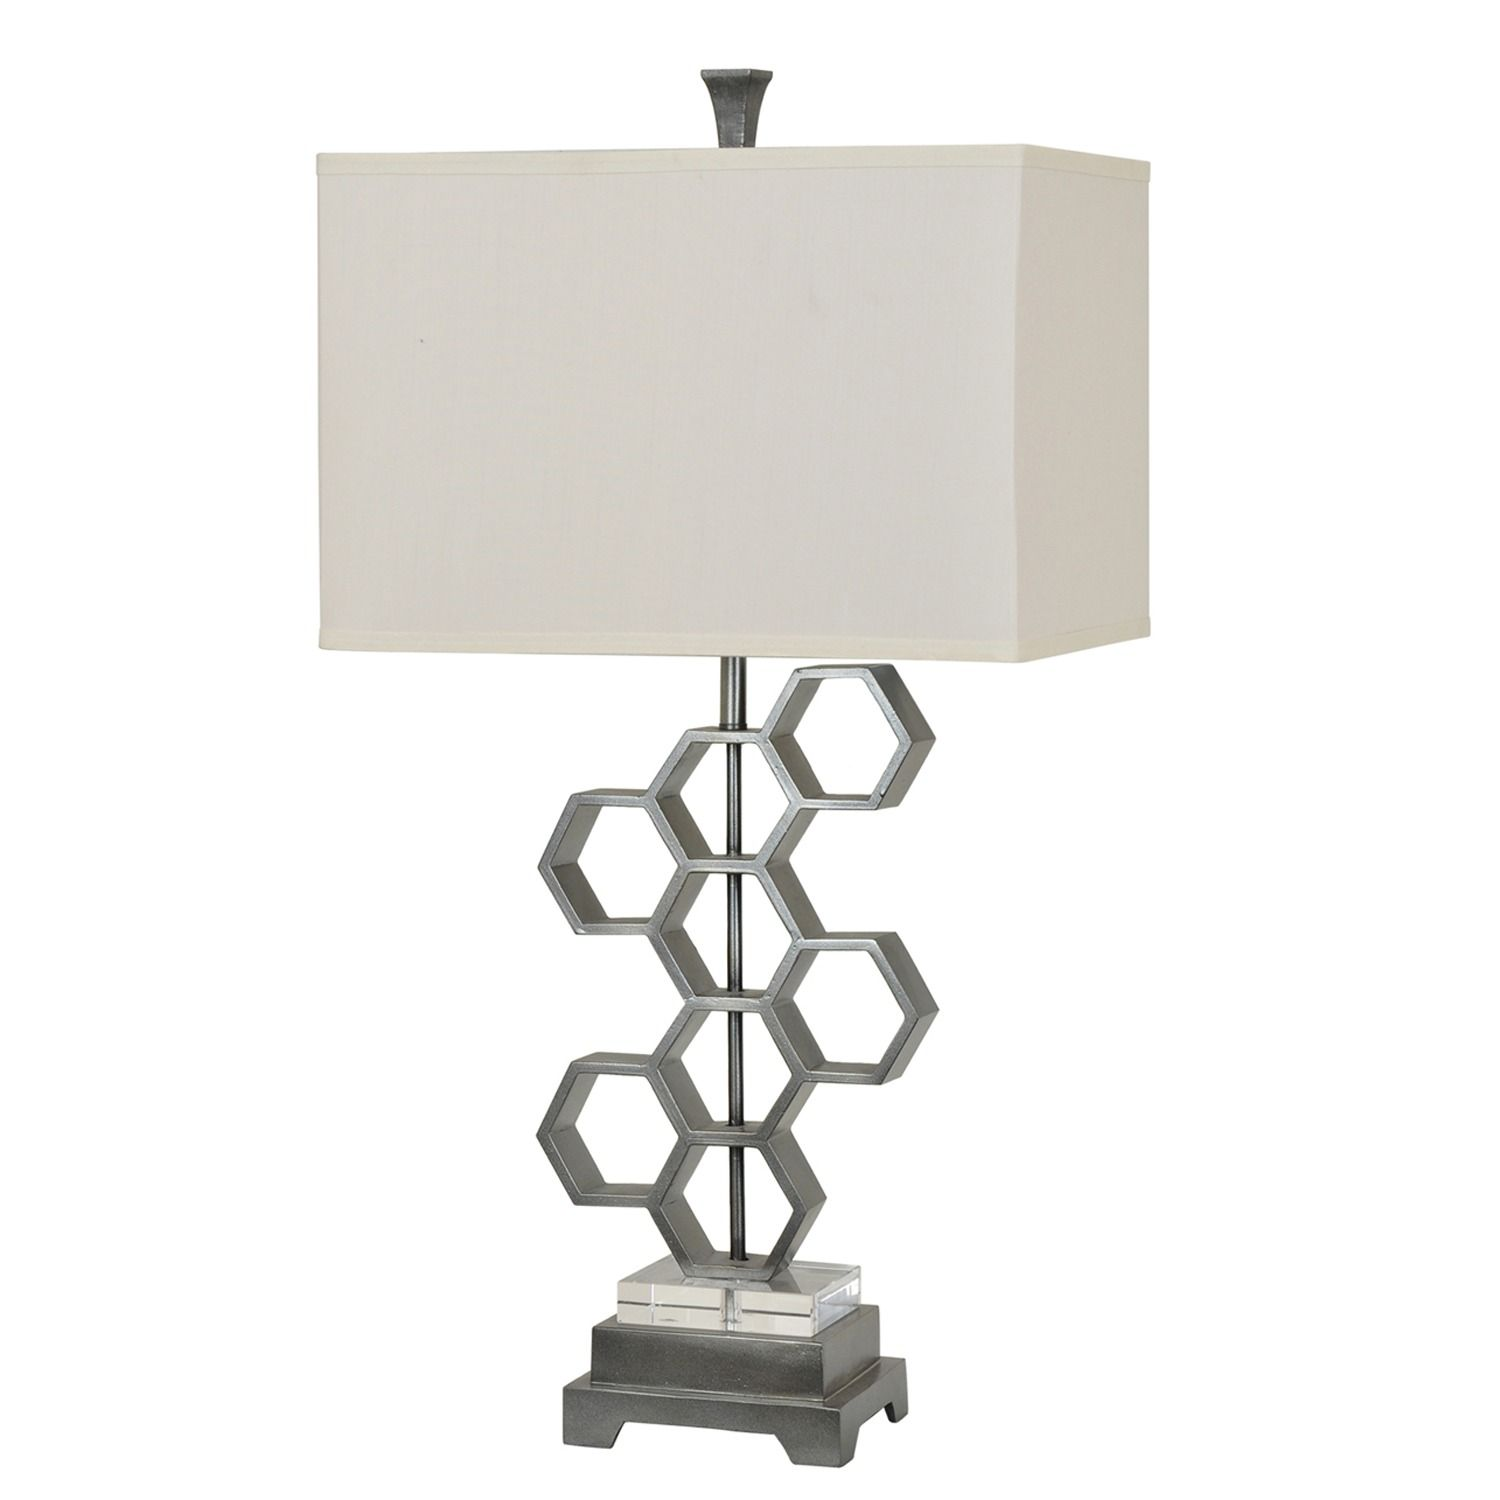 Molecular table lamp crestview collection home gallery stores crestview collection molecular table lamp x x 11 geotapseo Gallery